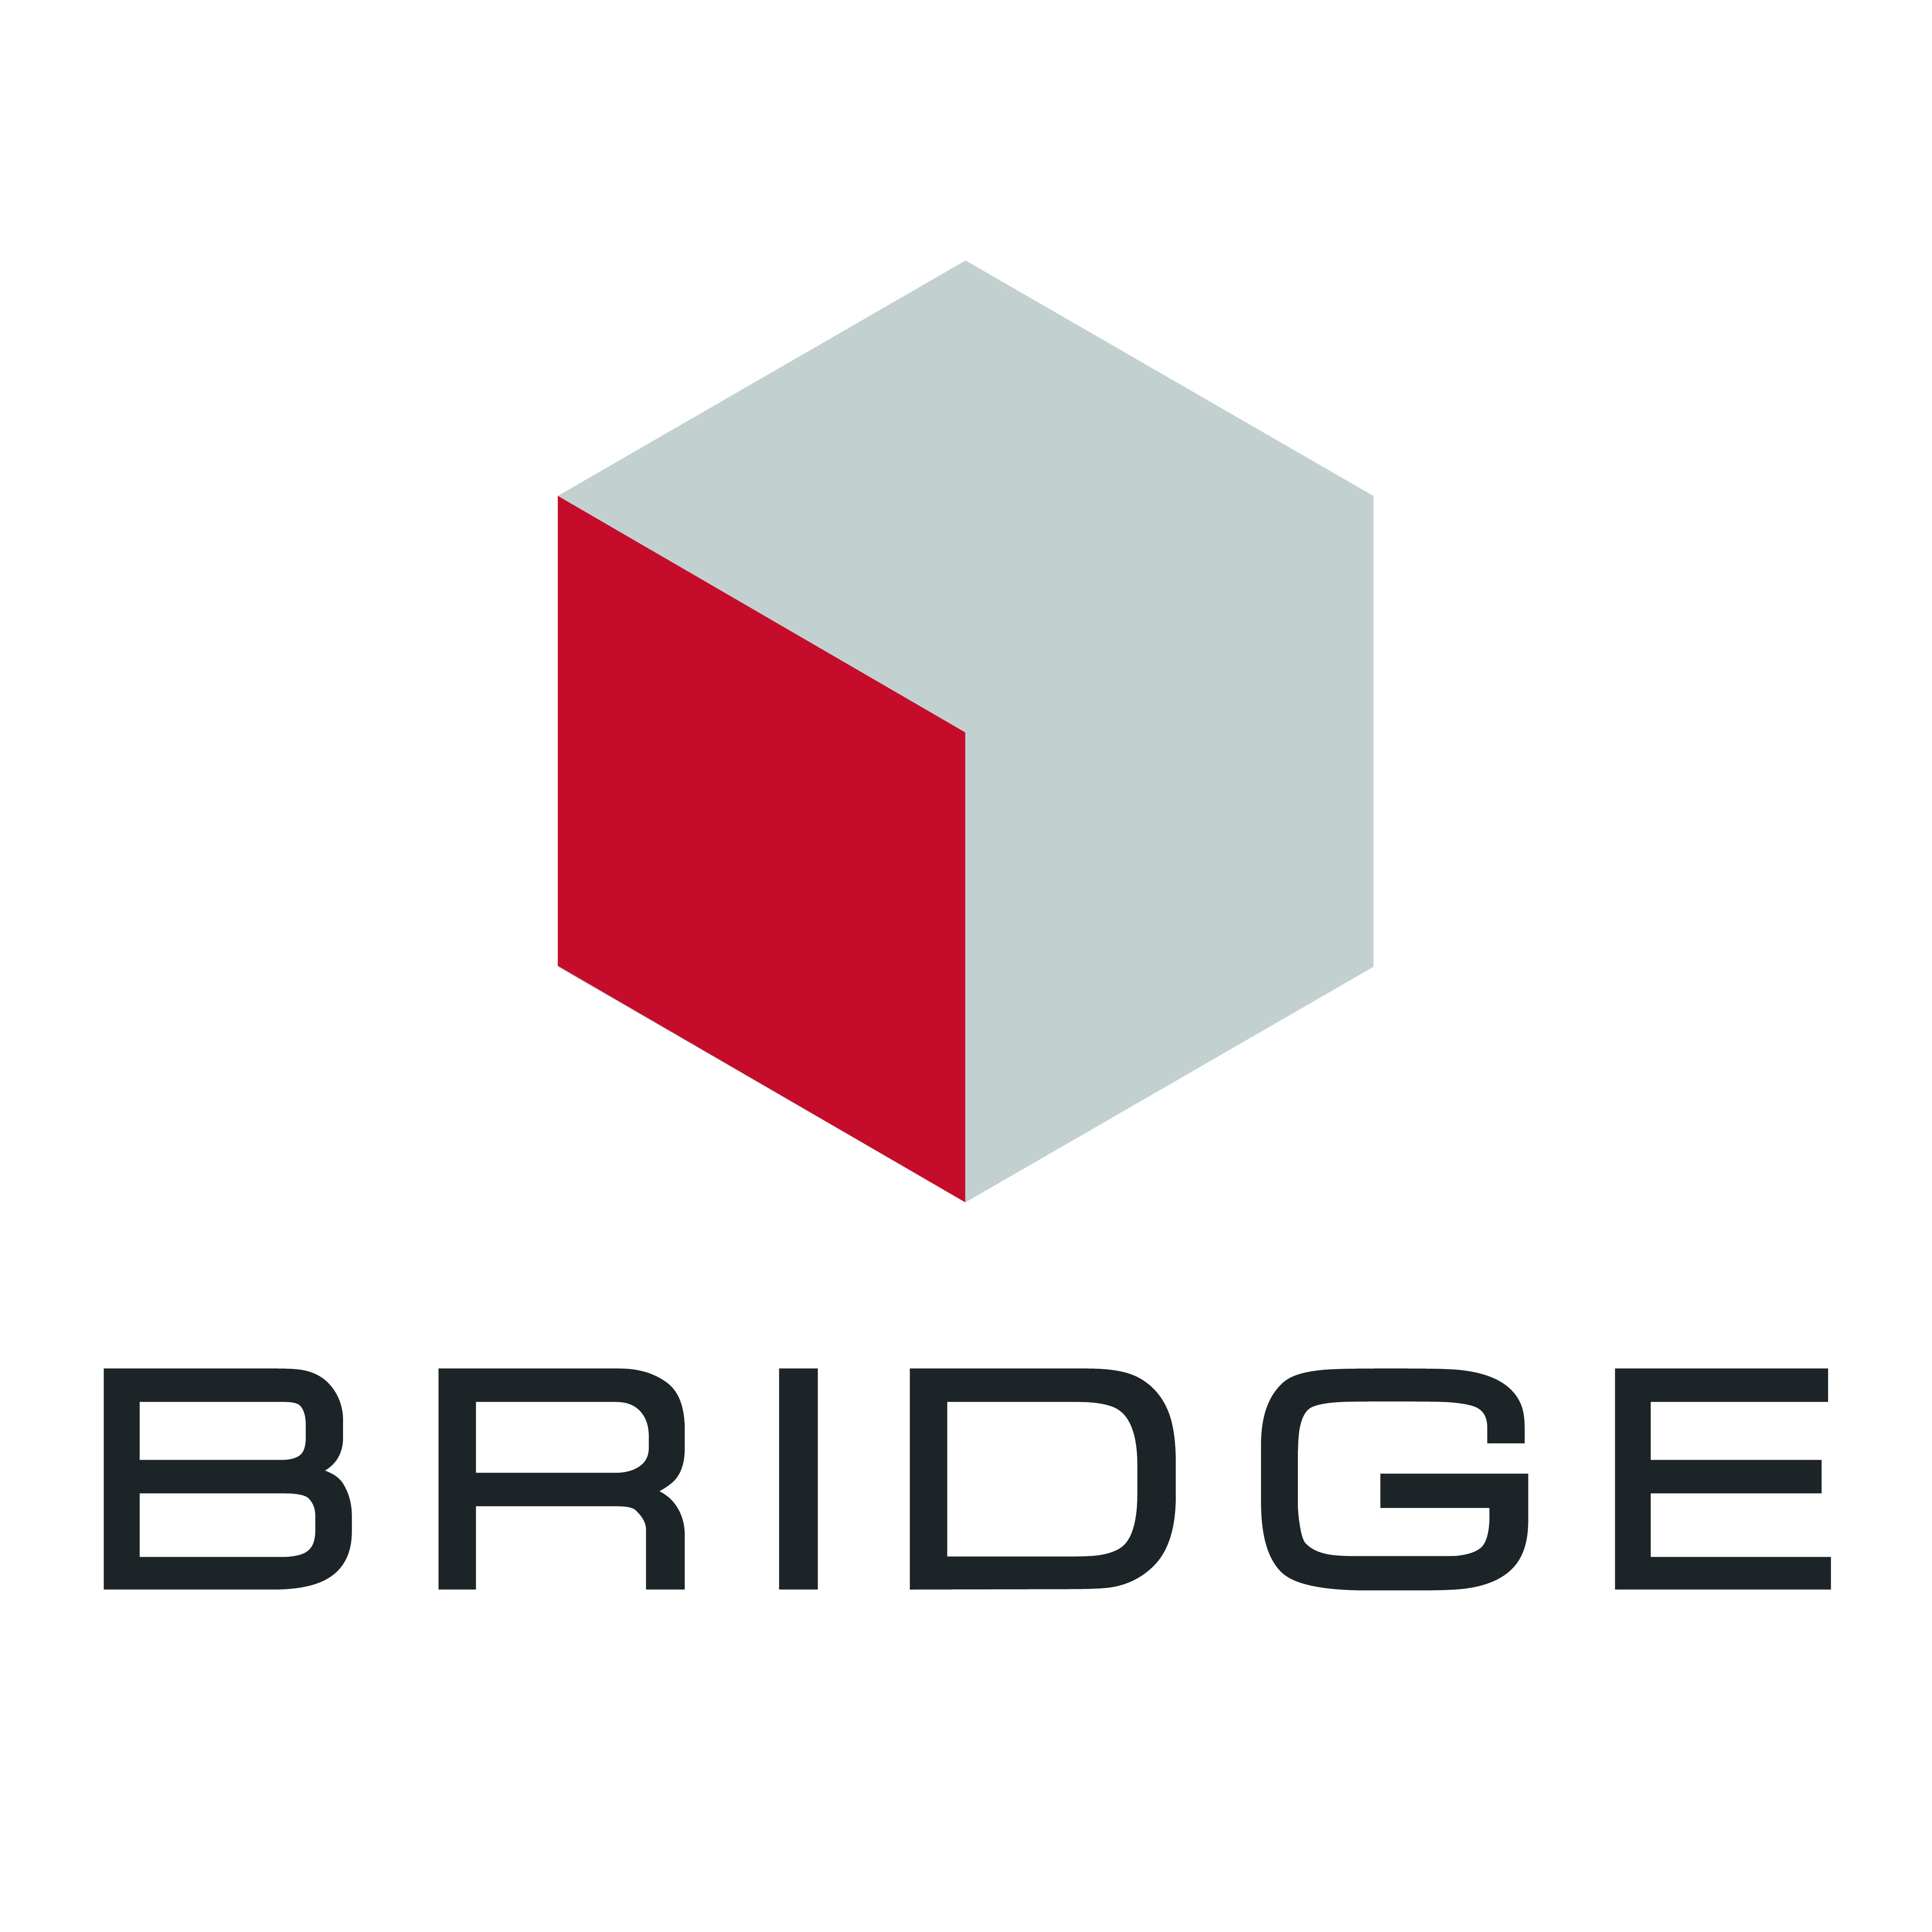 bridge nightclub logo